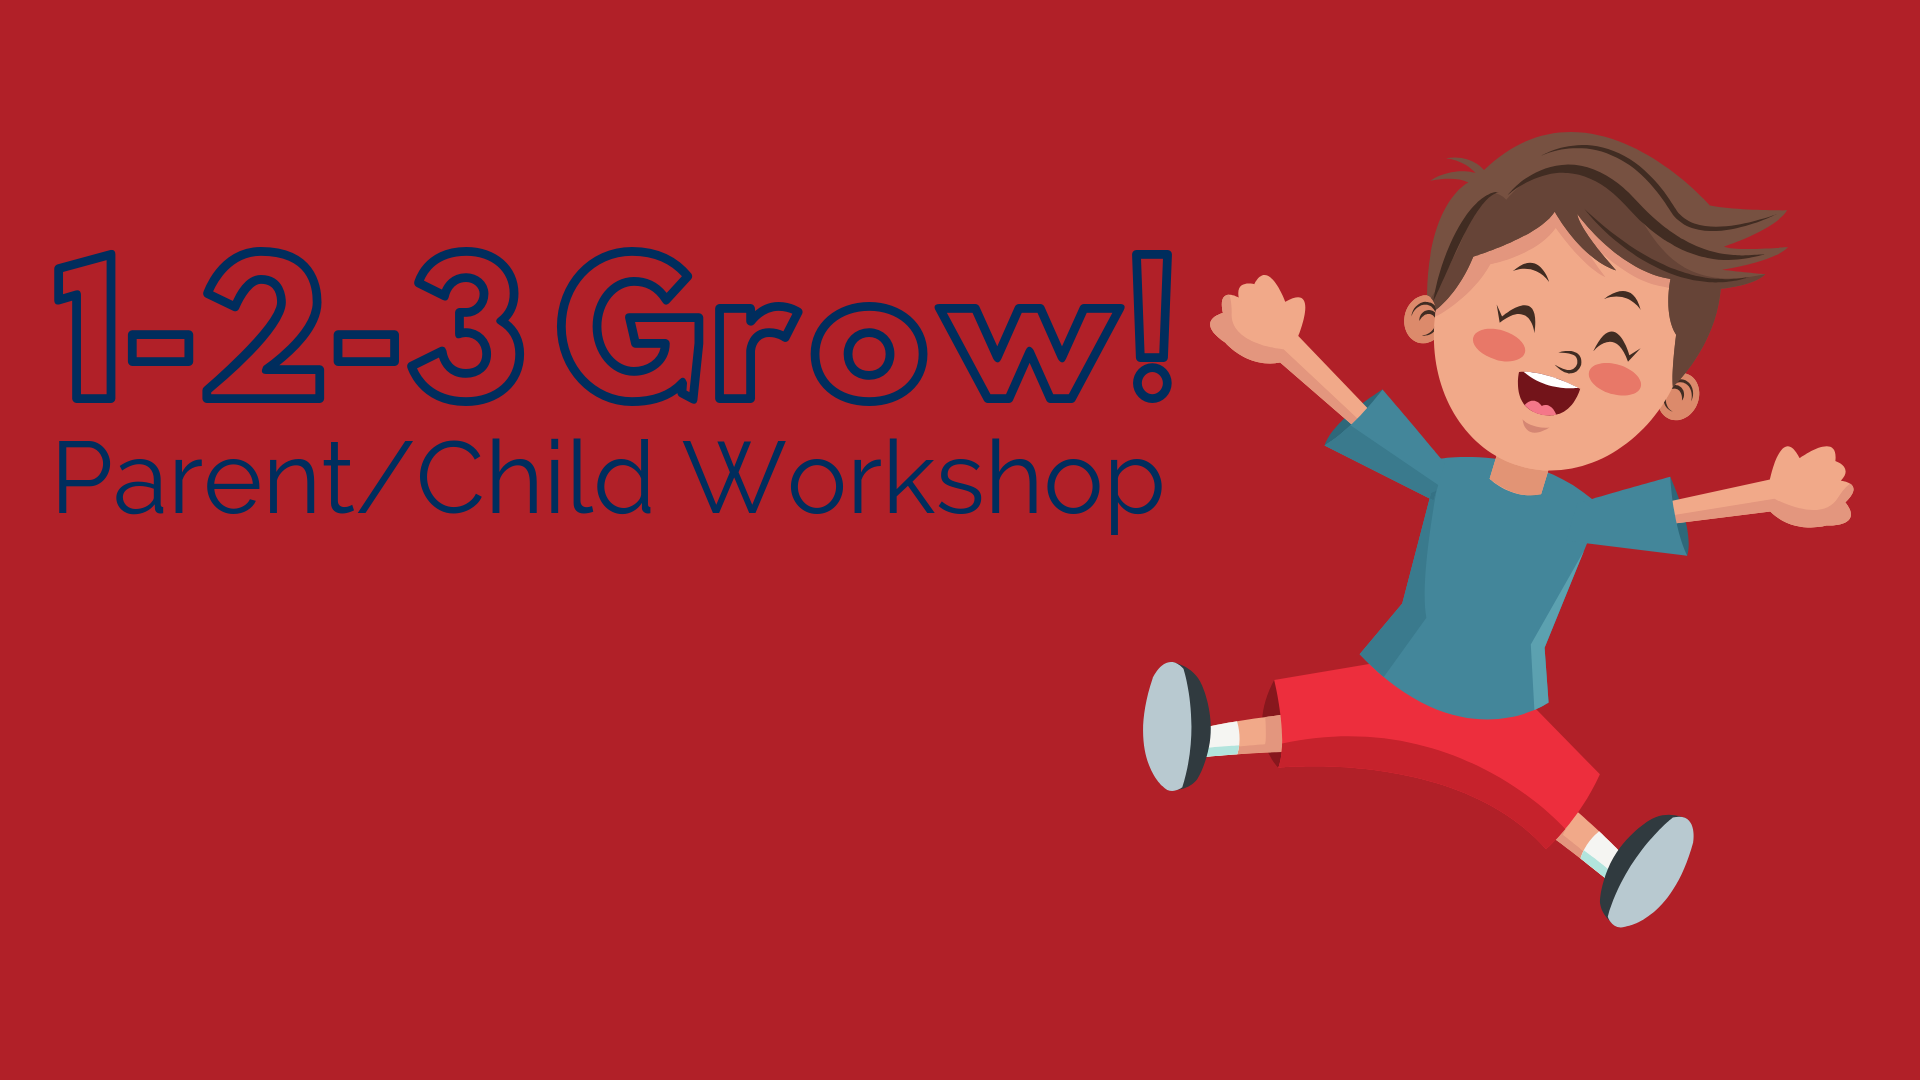 1-2-3 Grow! Parent/Child Workshop